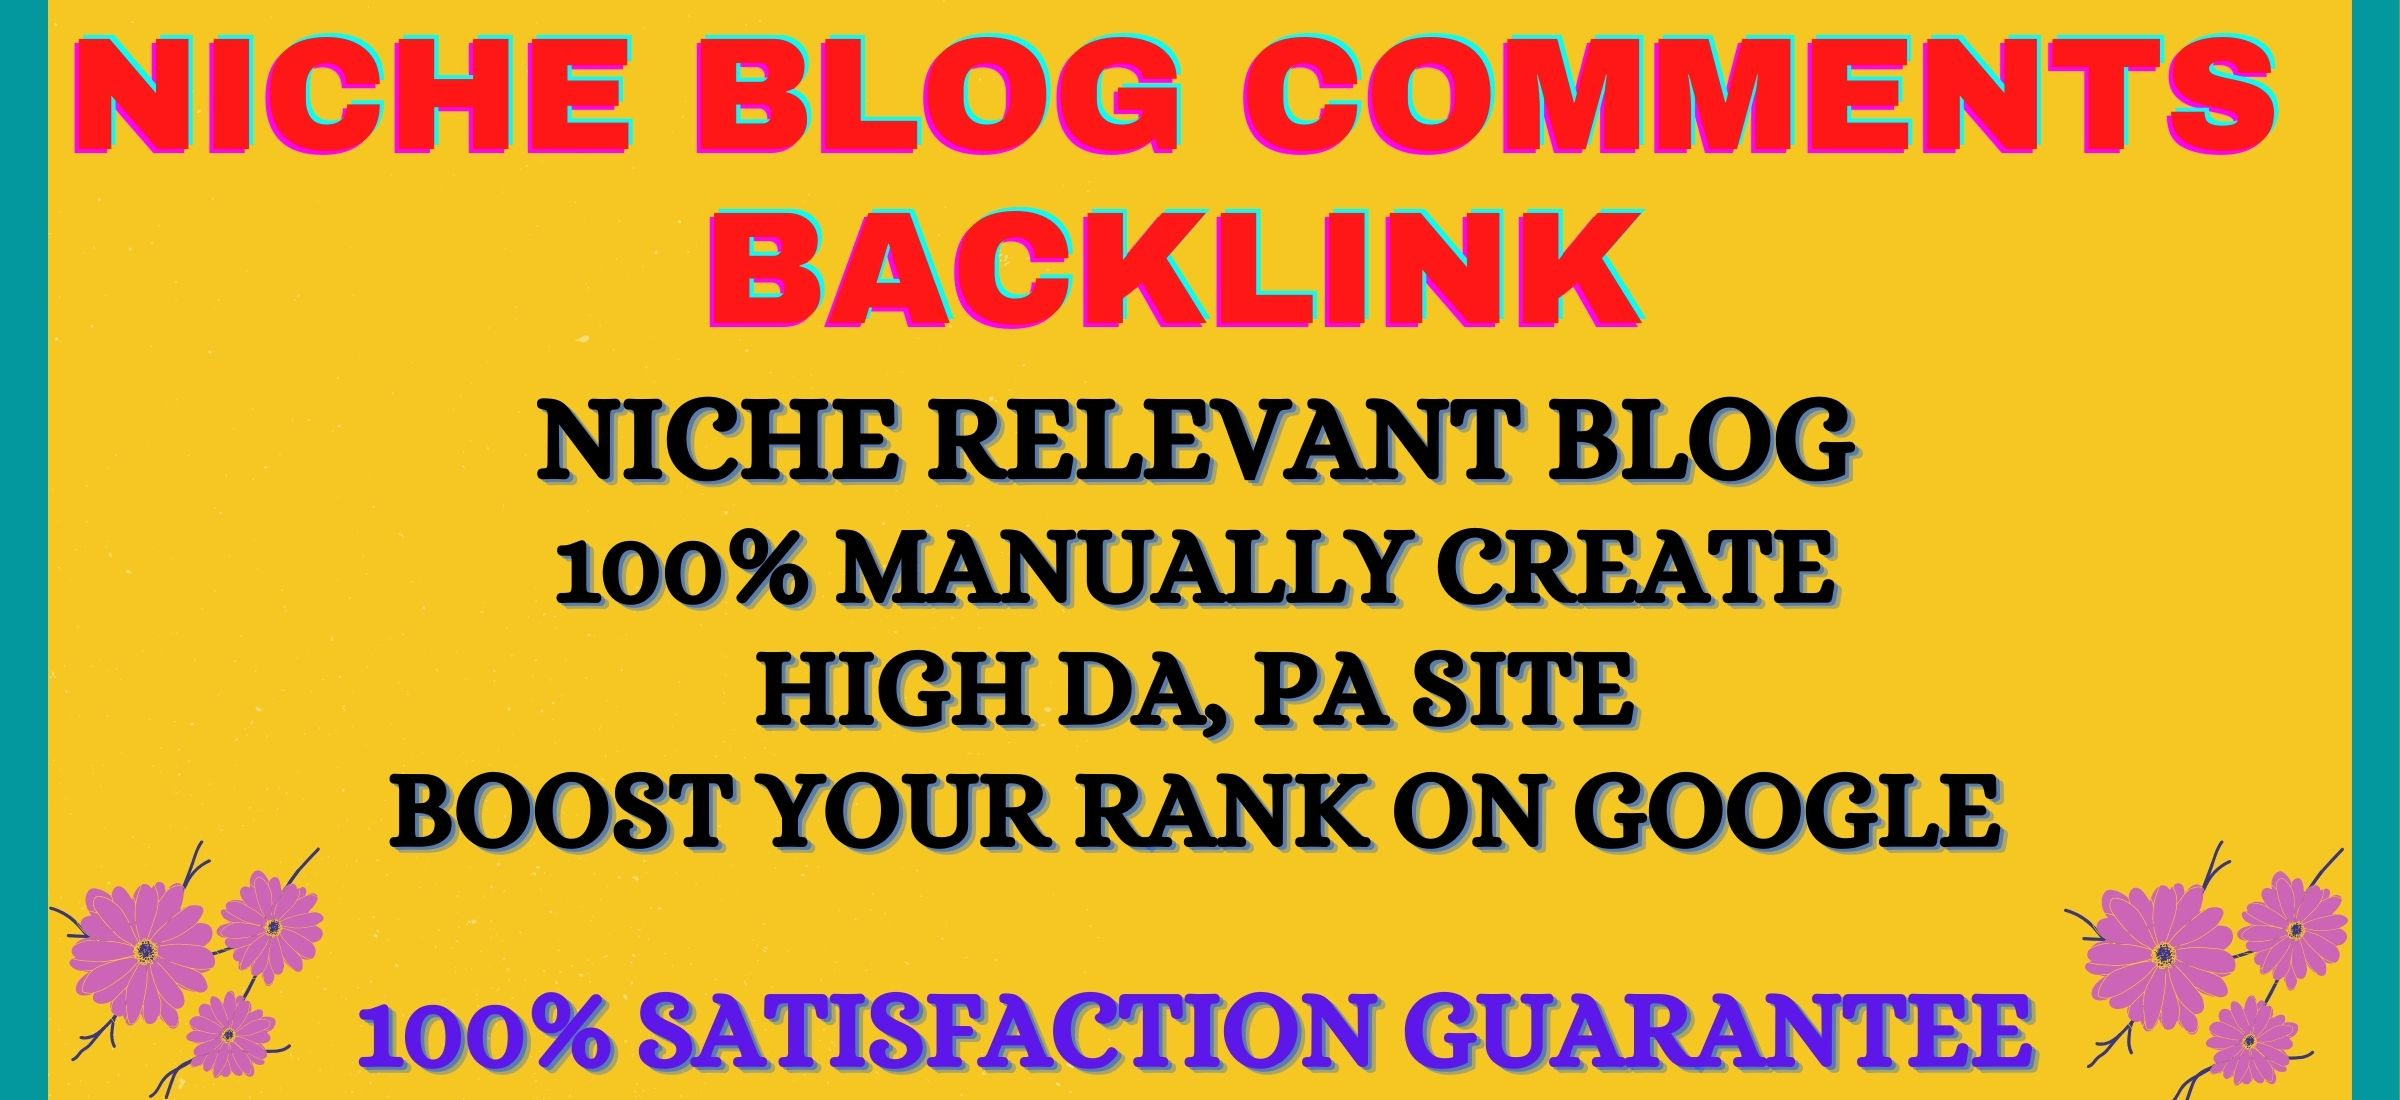 Create 40 niche relevant blog comments backlink on high da sites